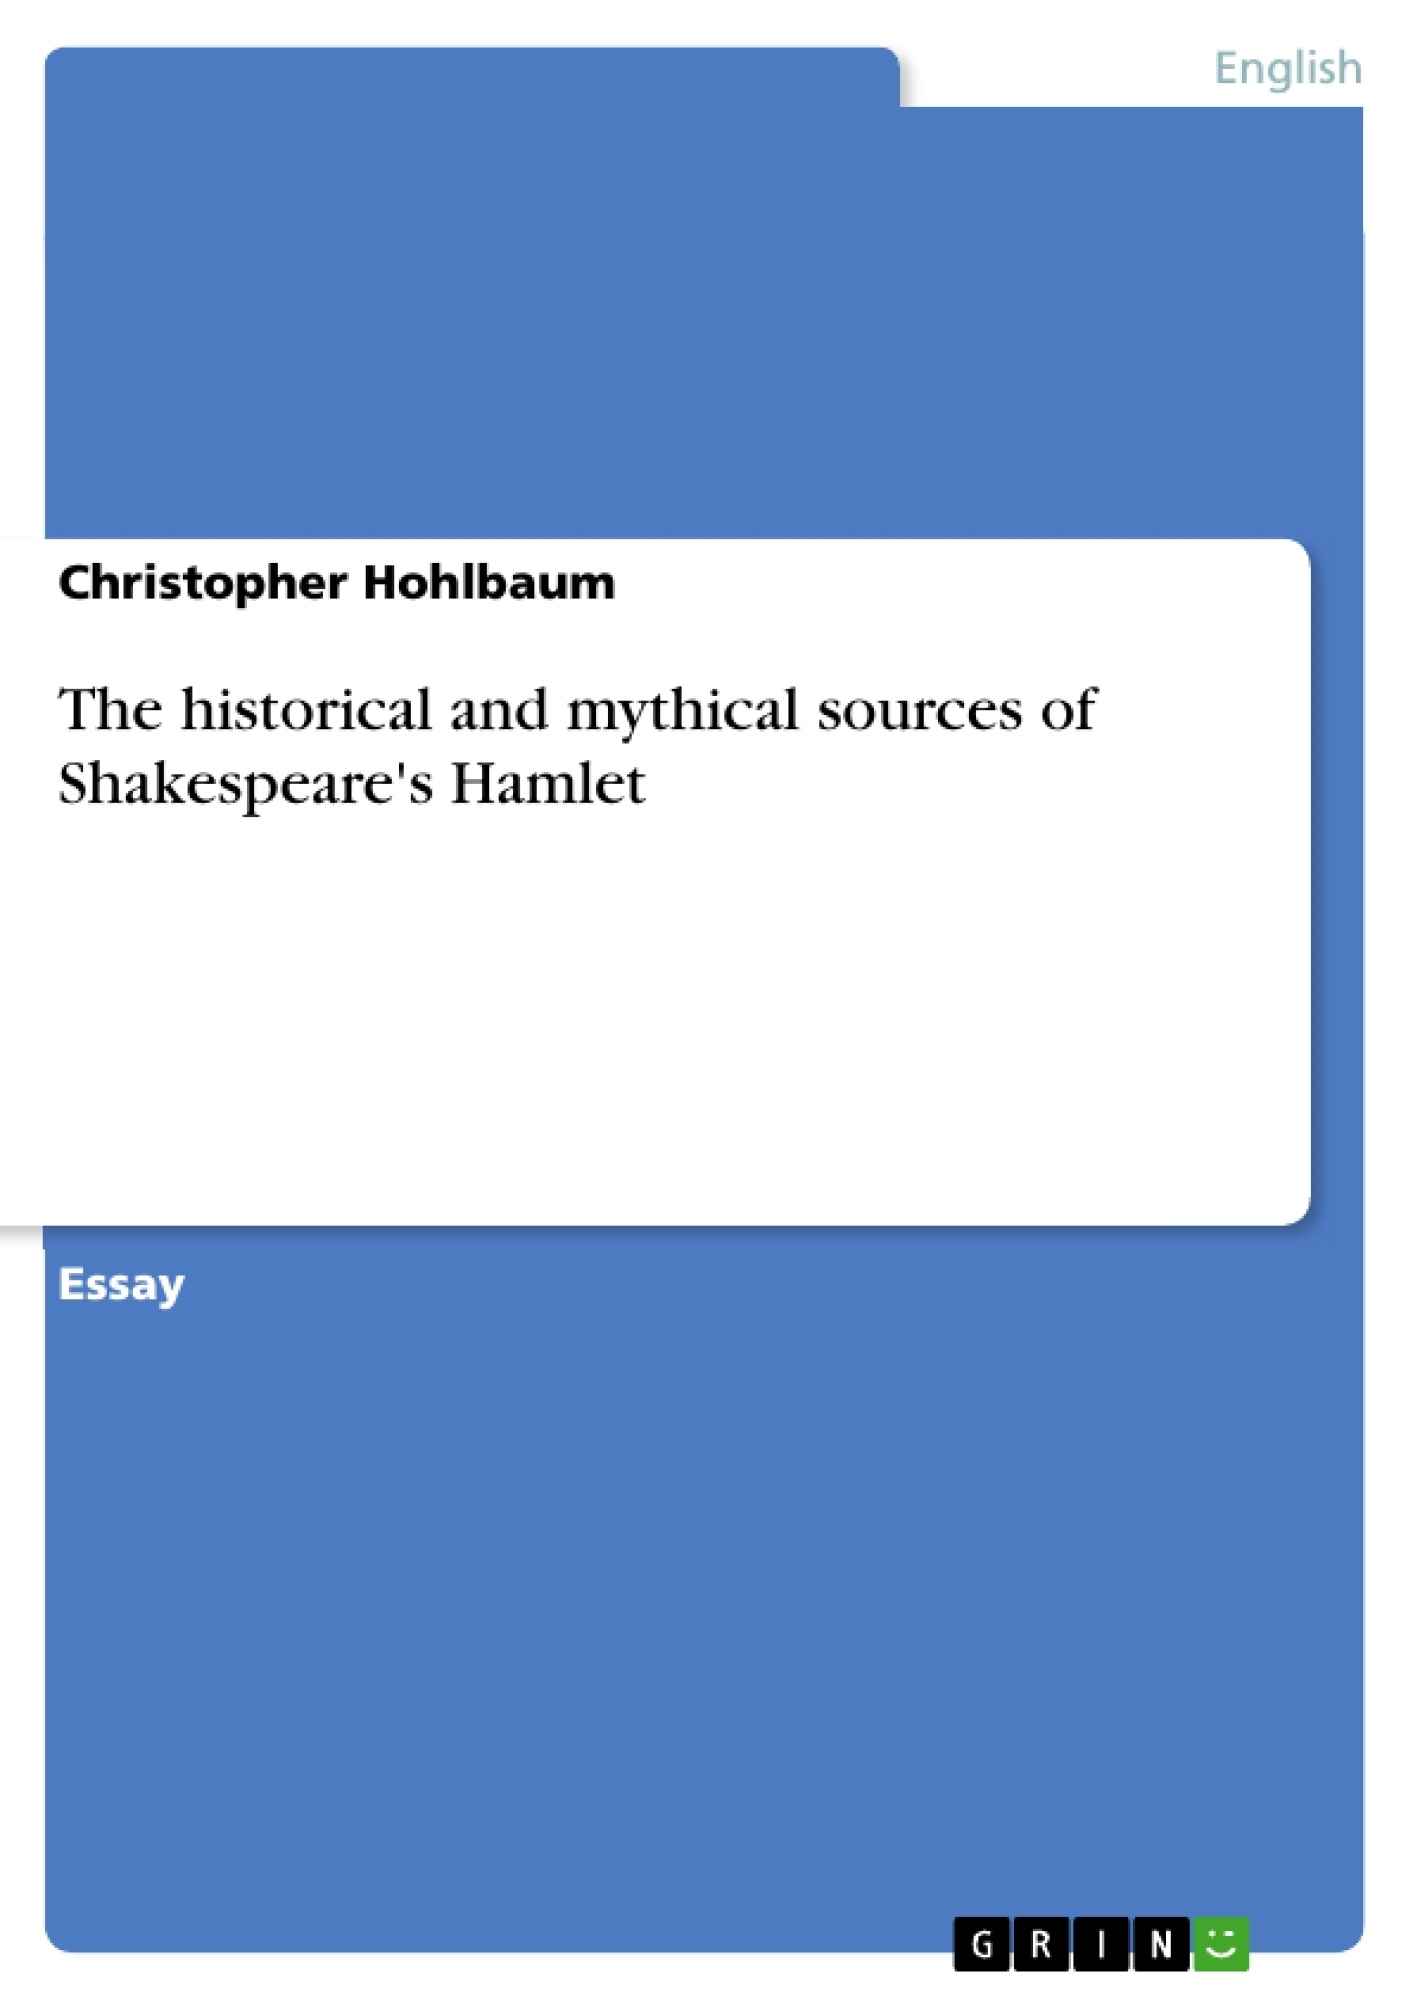 Title: The historical and mythical sources of Shakespeare's Hamlet